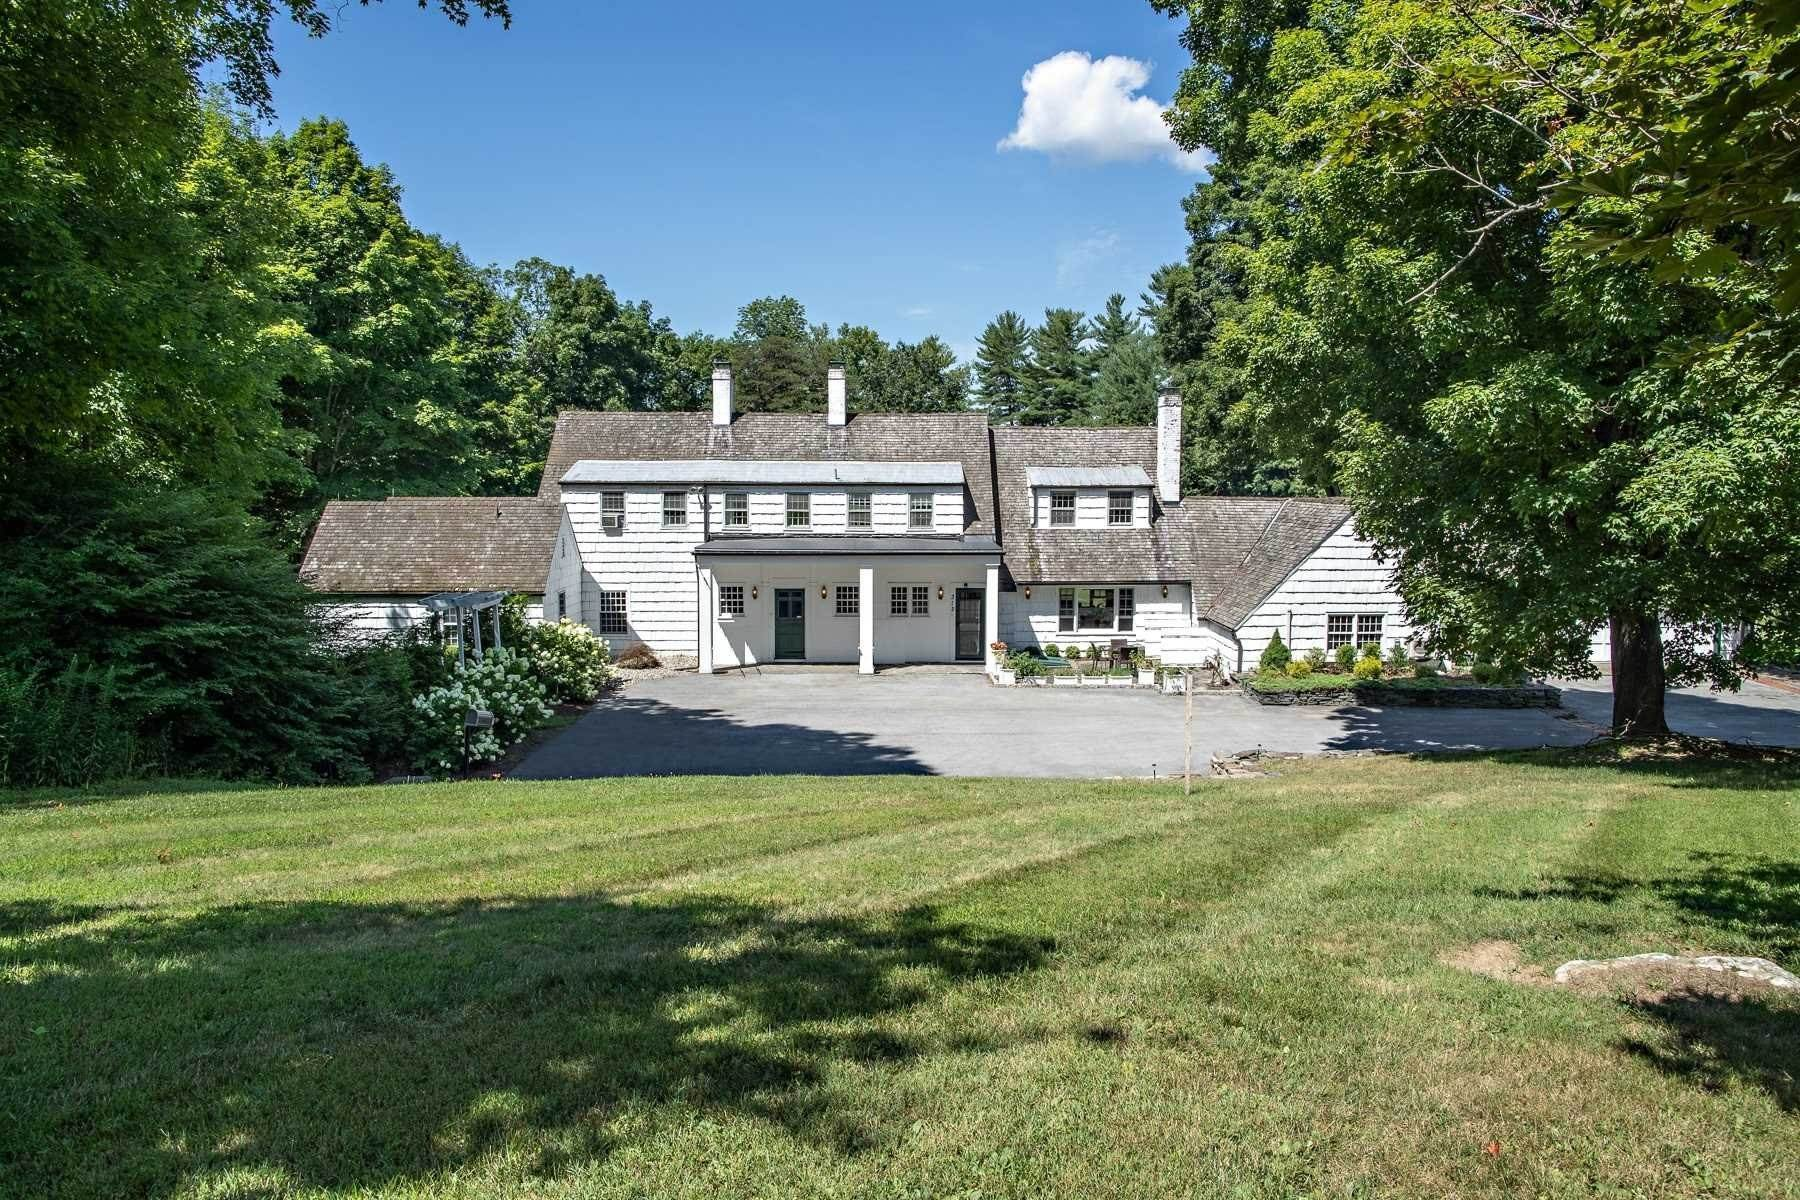 Single Family Homes for Sale at 312 GARDNER HOLLOW Road Beekman, New York 12570 United States